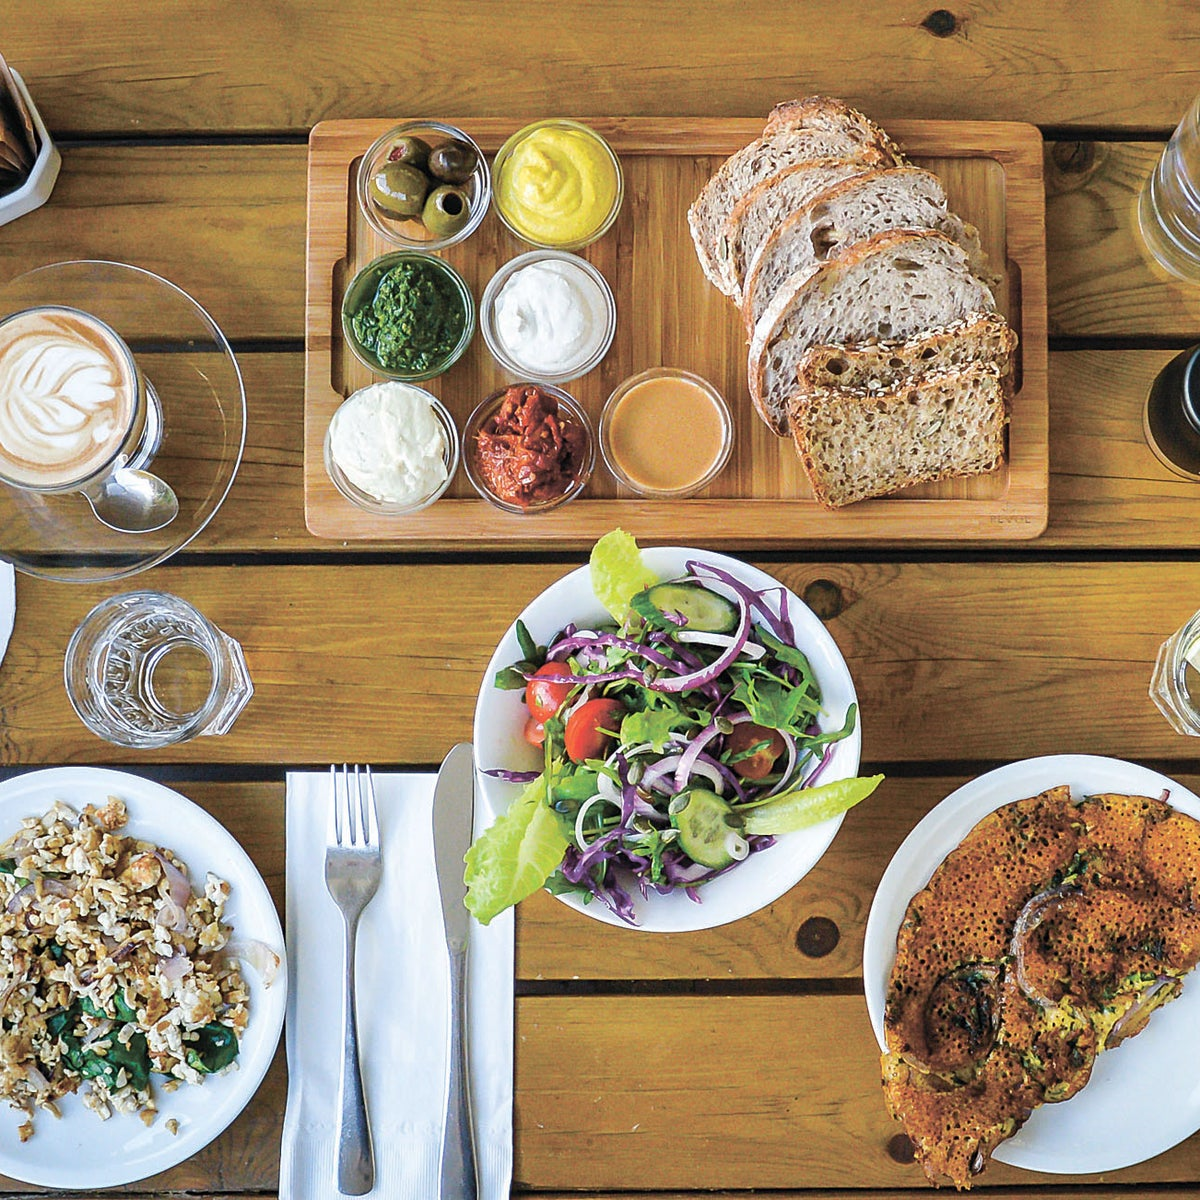 Anastasia café serves a rich breakfast with bread, dips, spreads, salad, a hummus flour omelet and drinks.